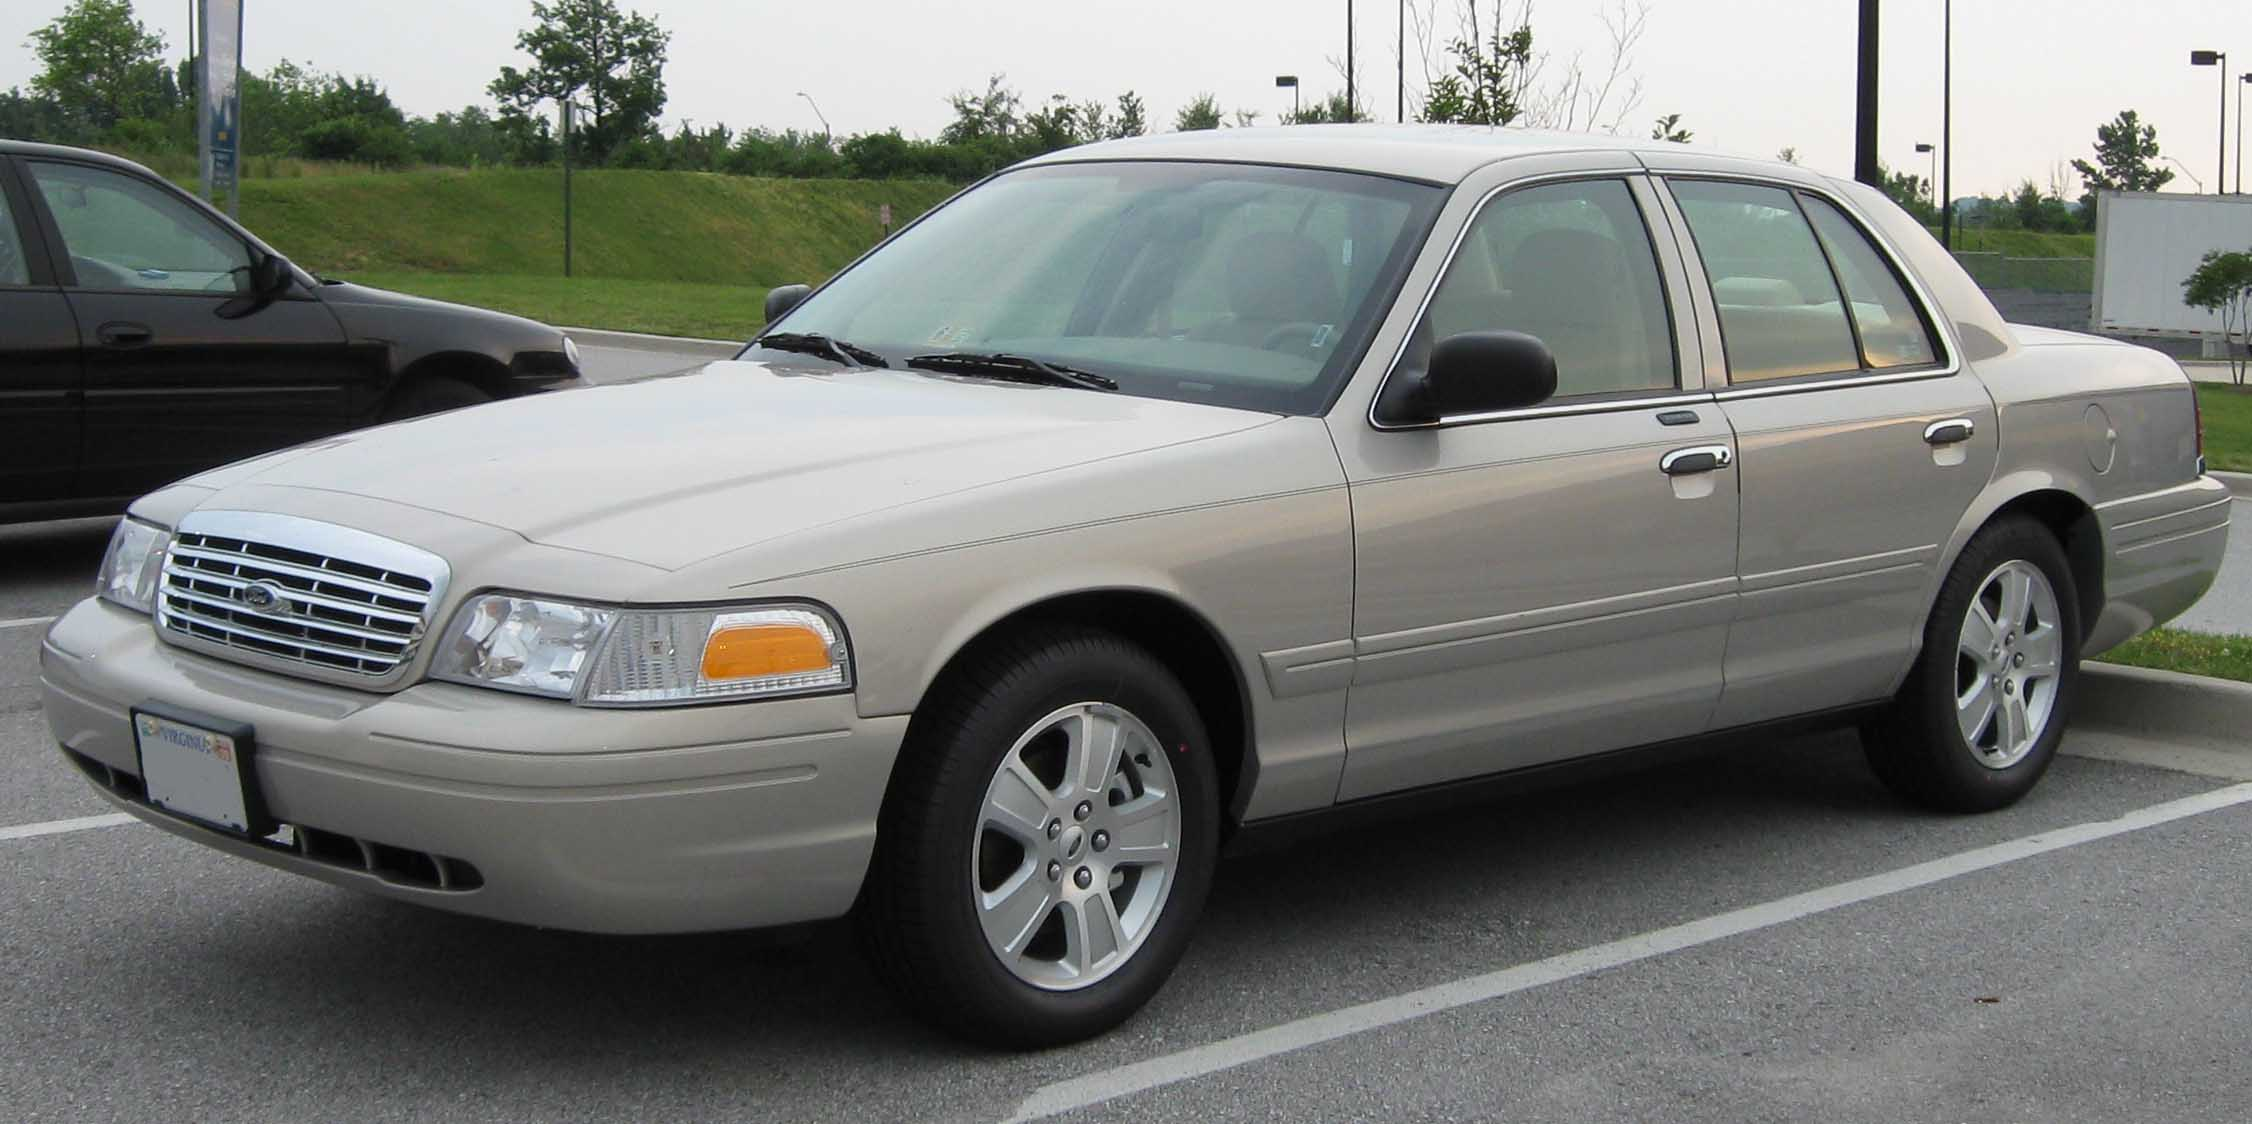 2001 Ford Crown Victoria #1